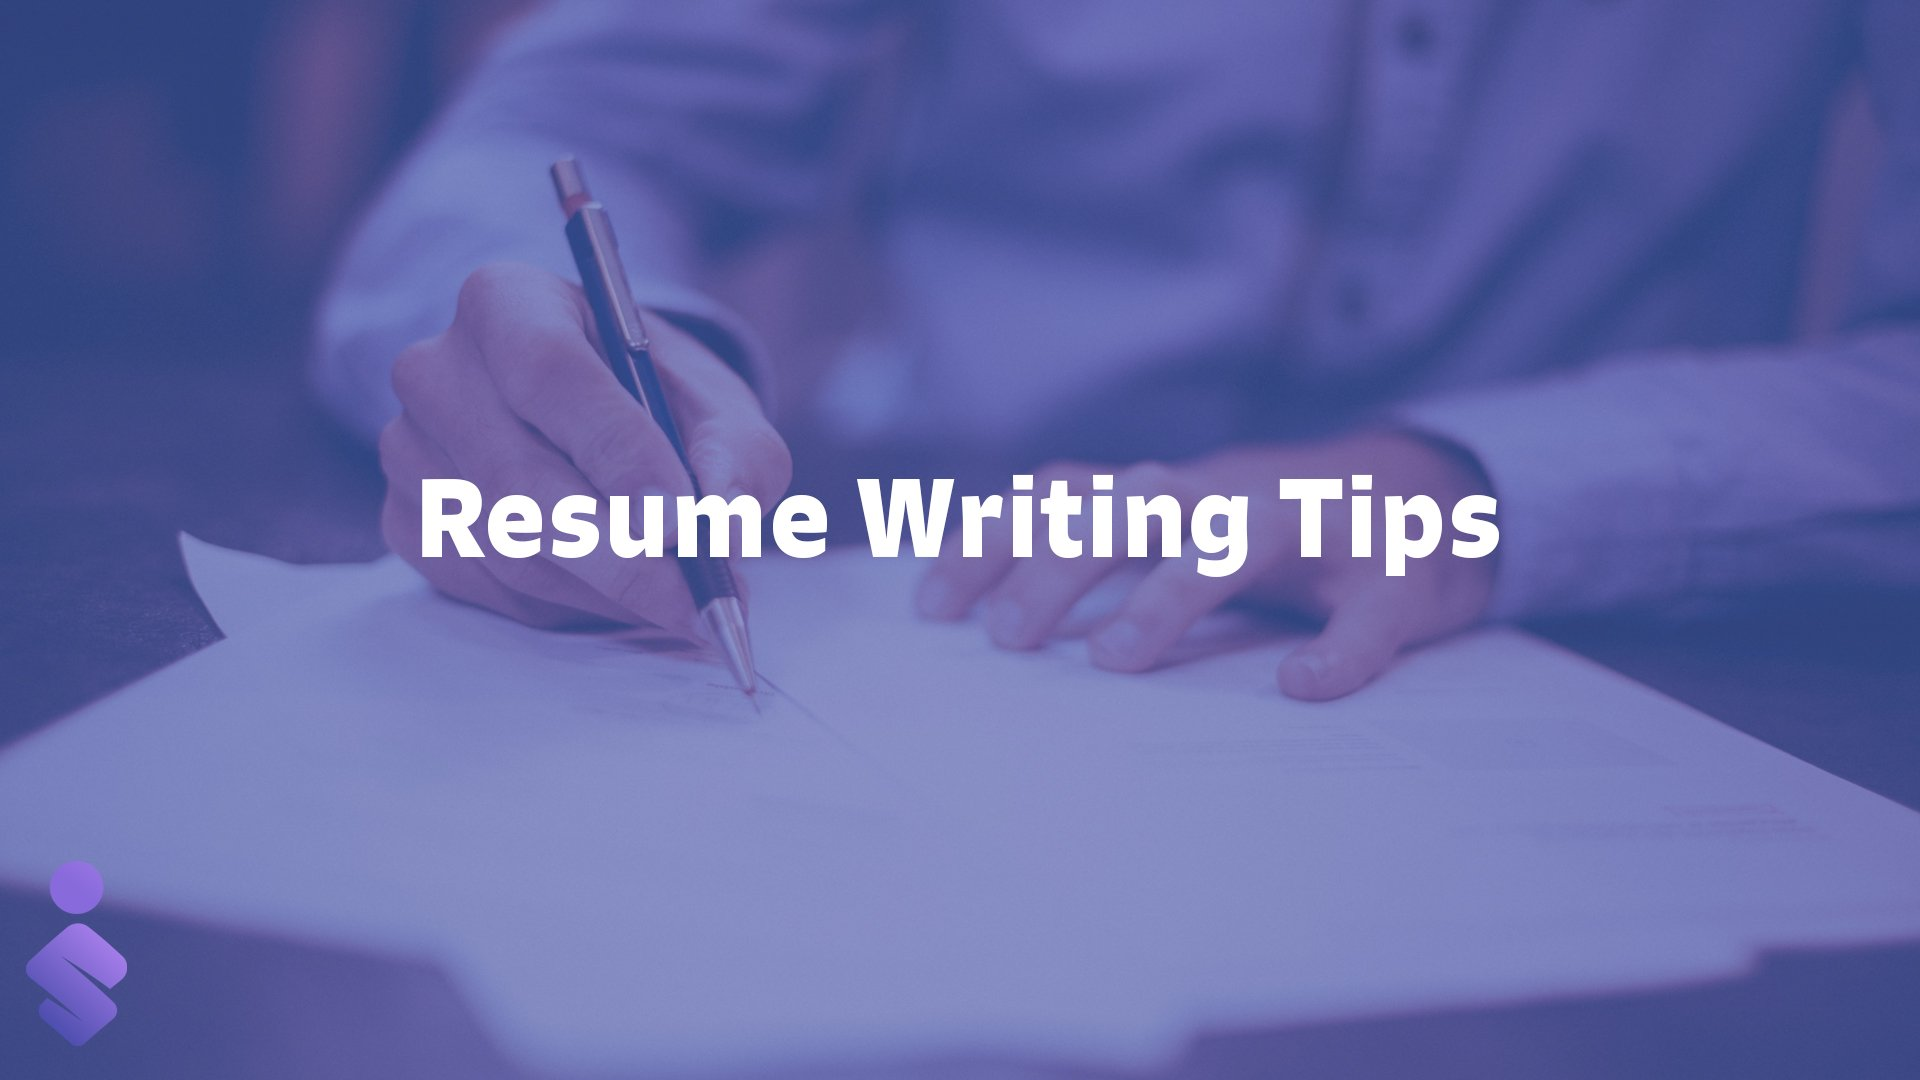 Resume Writing Tips - Blogs & Articles